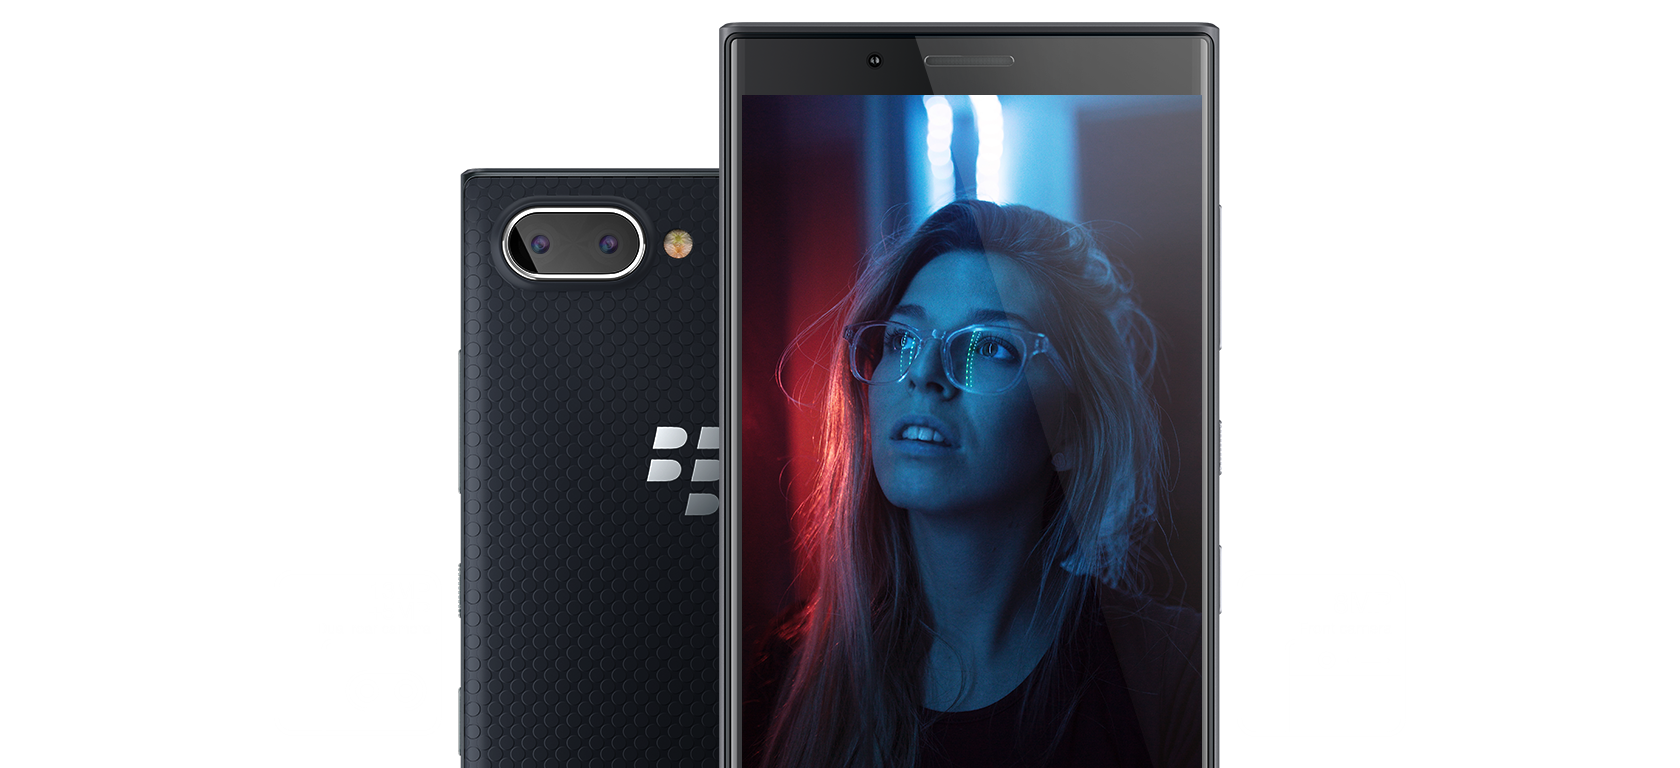 dual camera - BlackBerry KEY2 LE